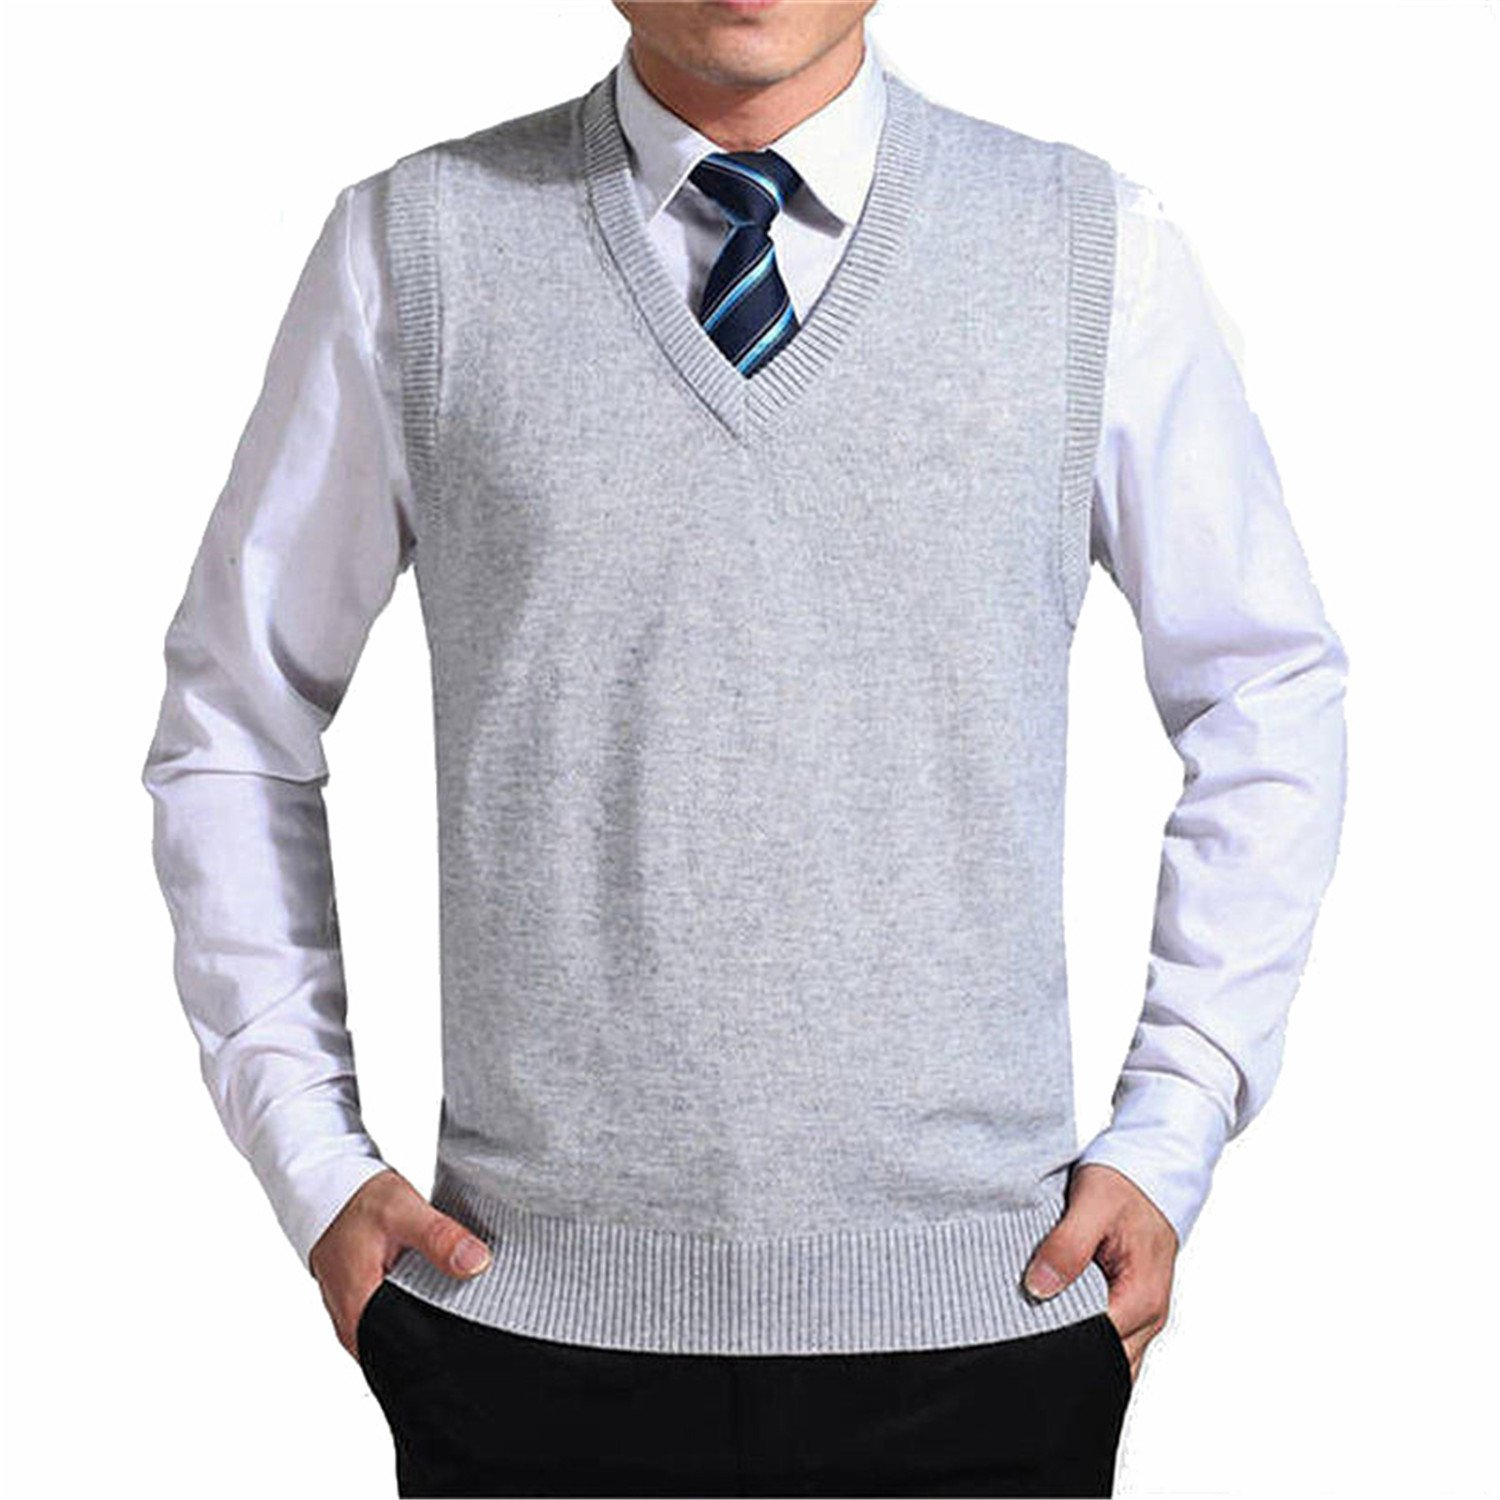 Reneem Solid Color Sweater Vest Men Cashmere Sweaters Wool Pullover V-Neck Sleeveless